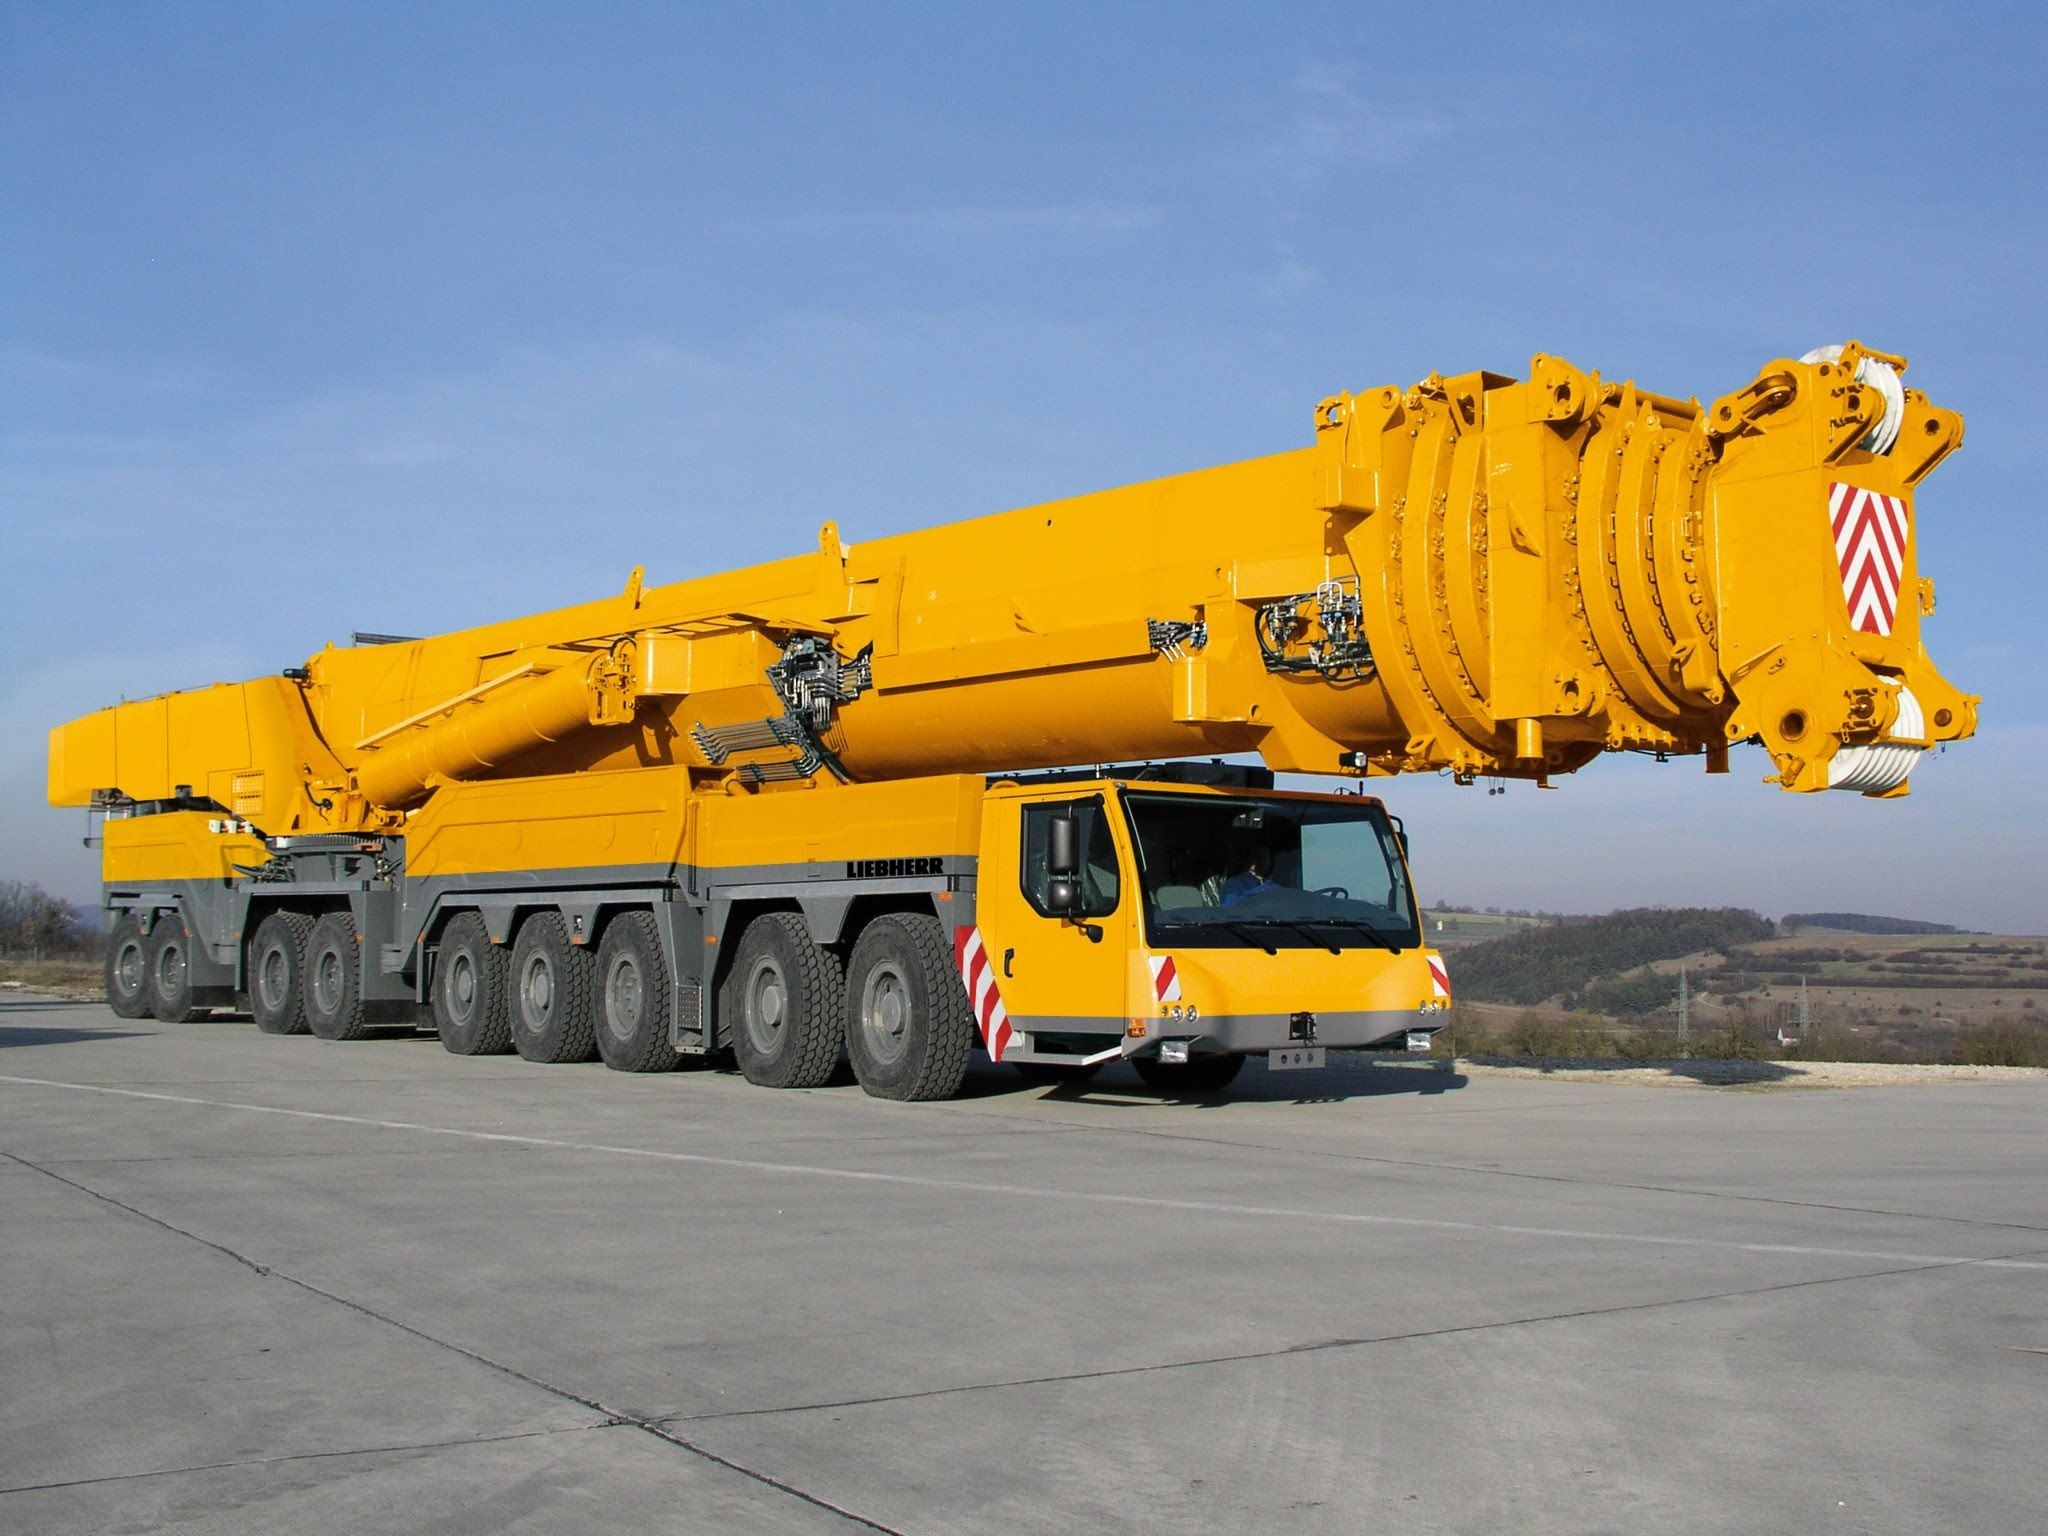 Rigante Telescopic Mobile Cranes : The most powerful mobile crane in world liebherr ltm